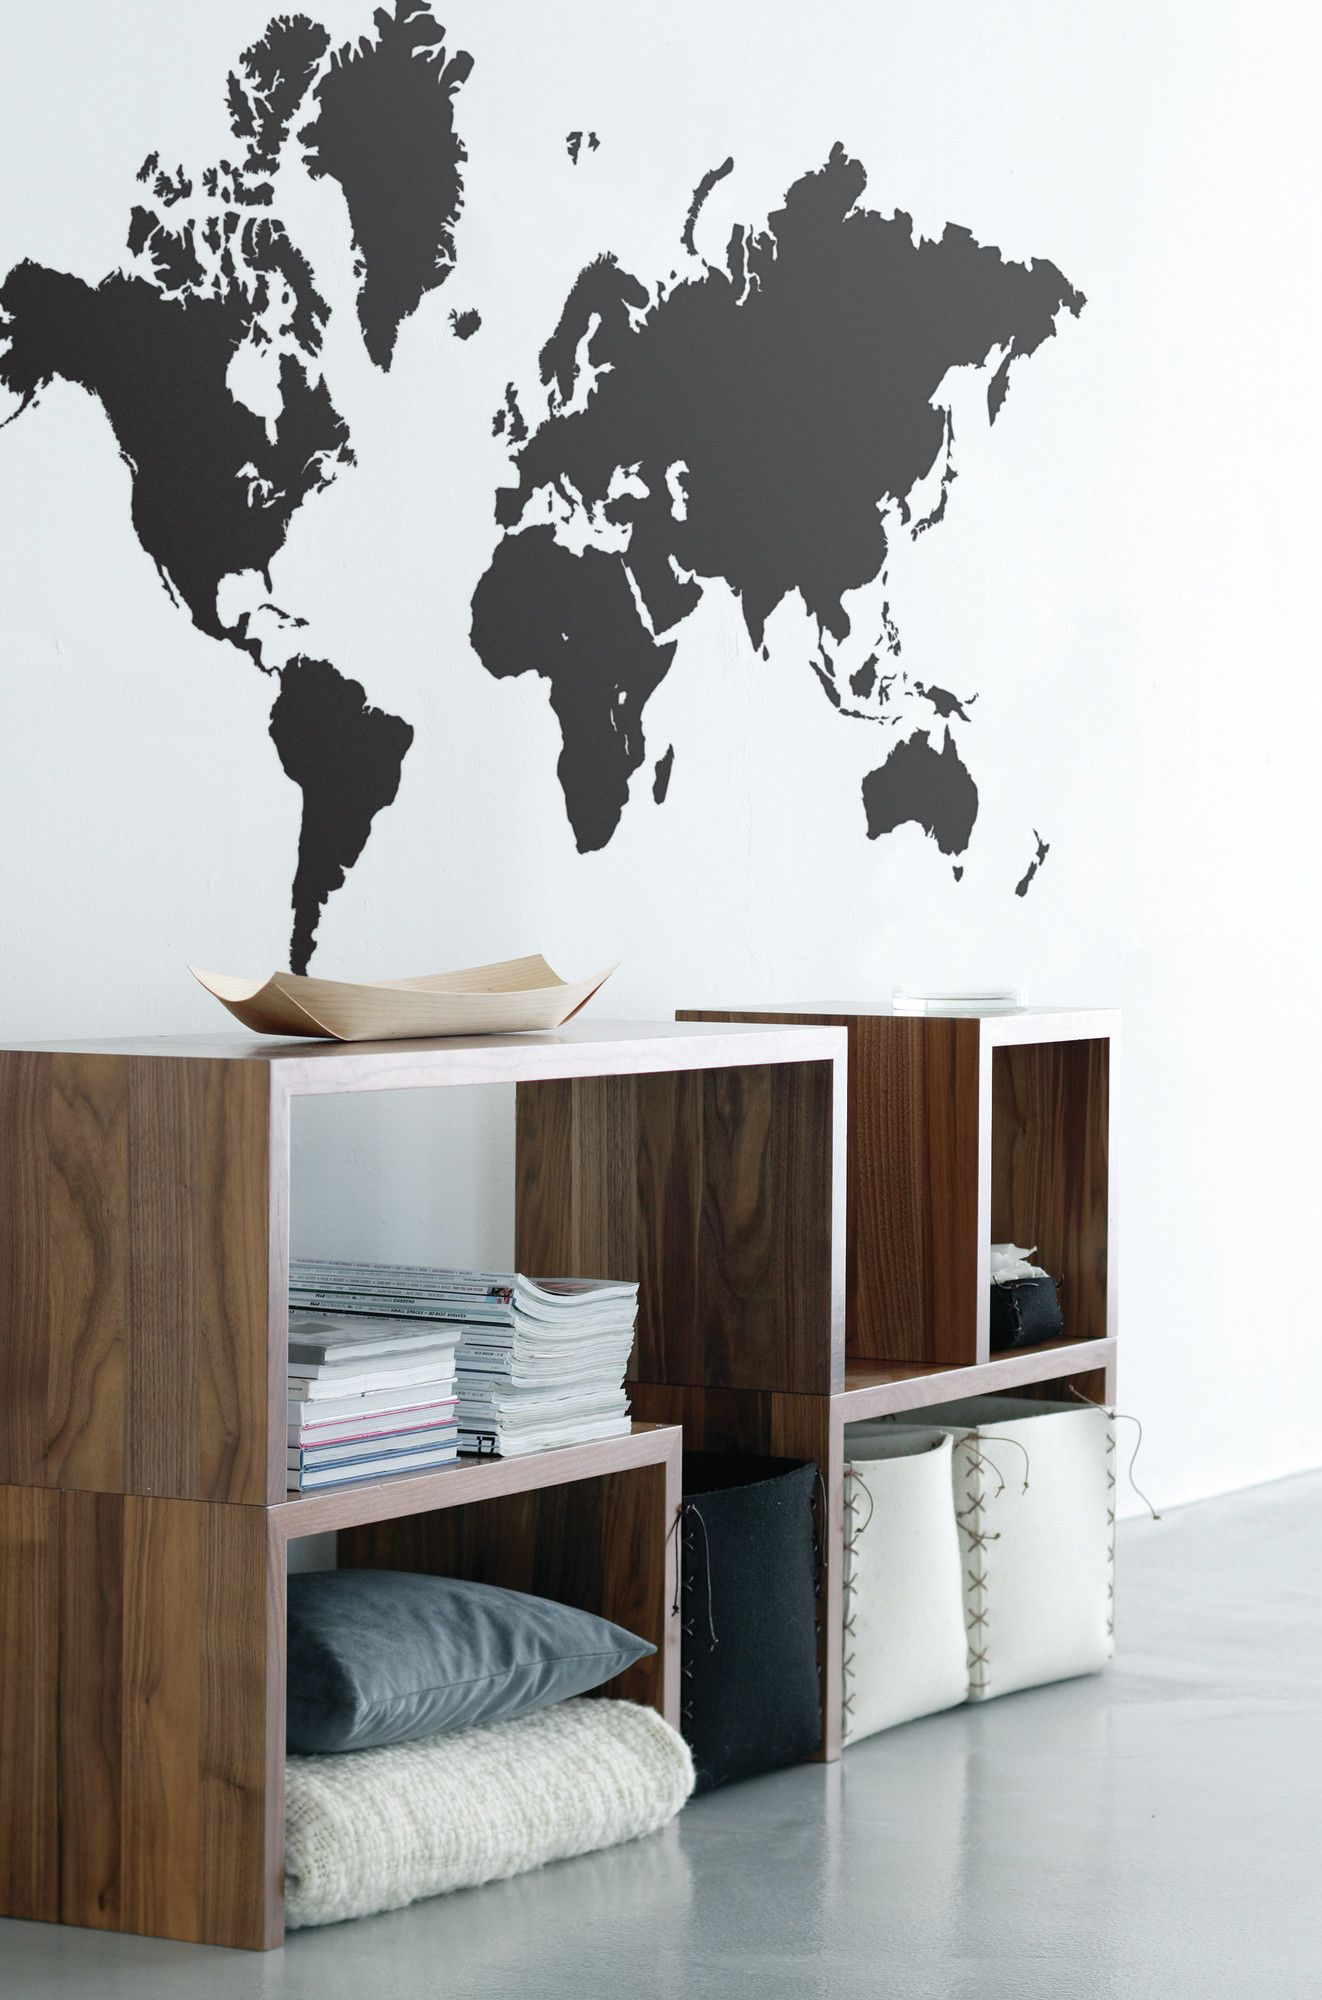 Ferm living world map wall decal allmodern neat spaces kids ferm living world map wall decal allmodern gumiabroncs Image collections